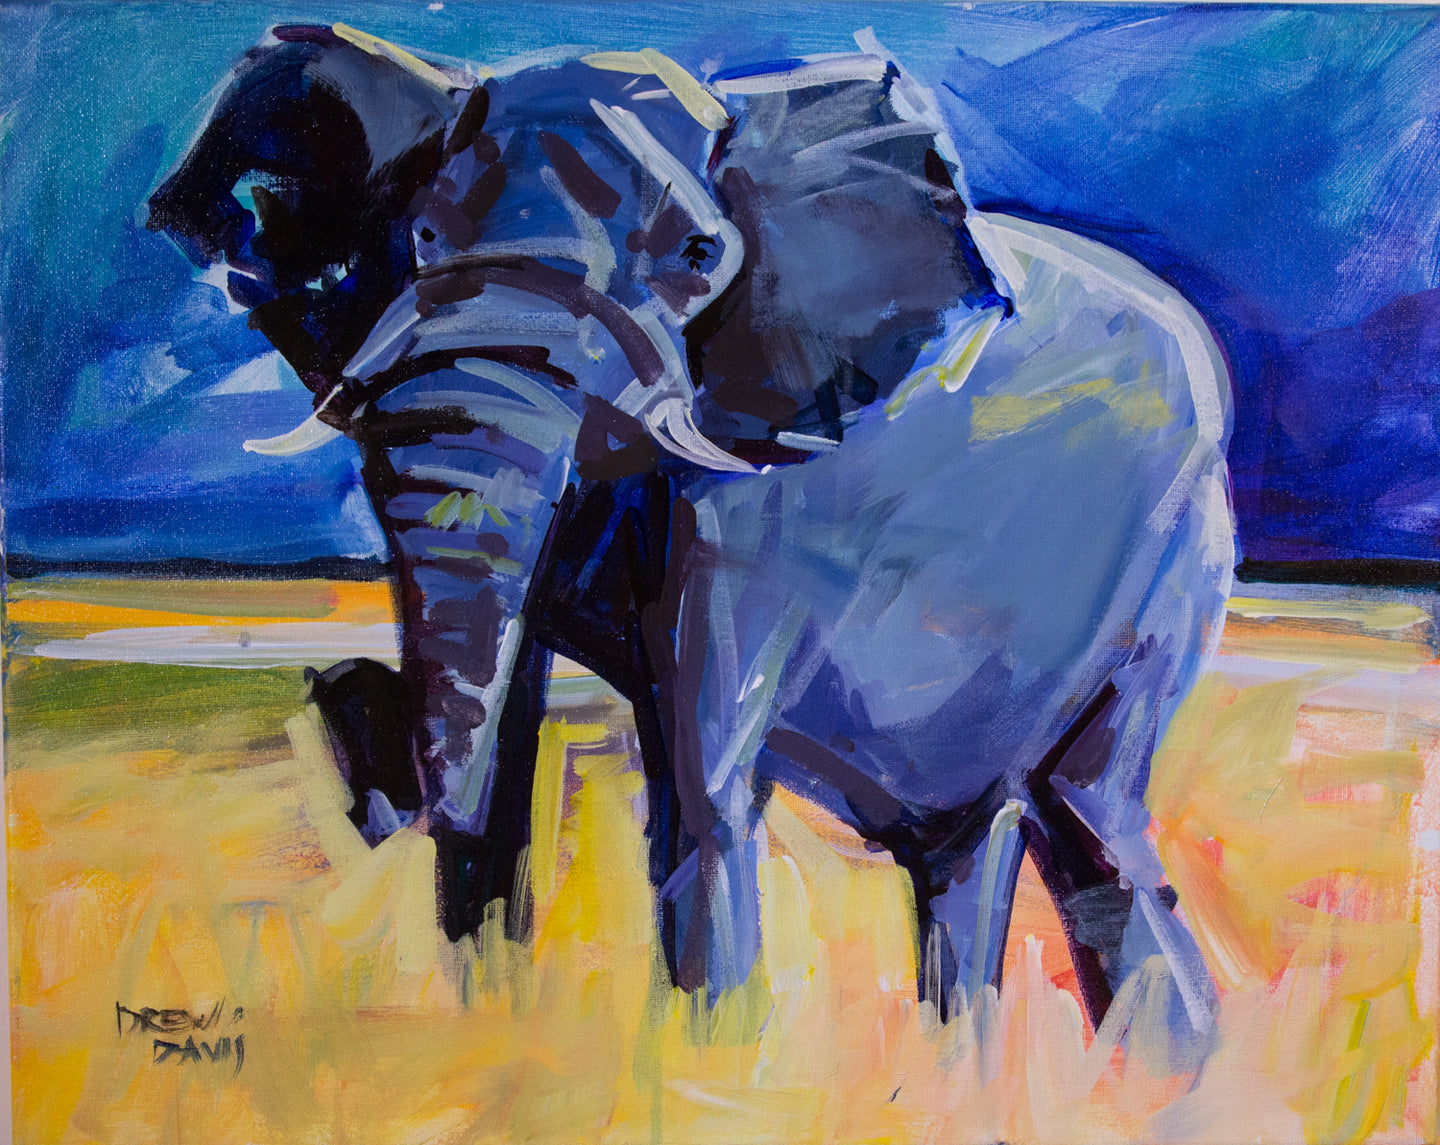 ELEPHANT 3 | 16x20 | Original Acrylic Study on Canvas